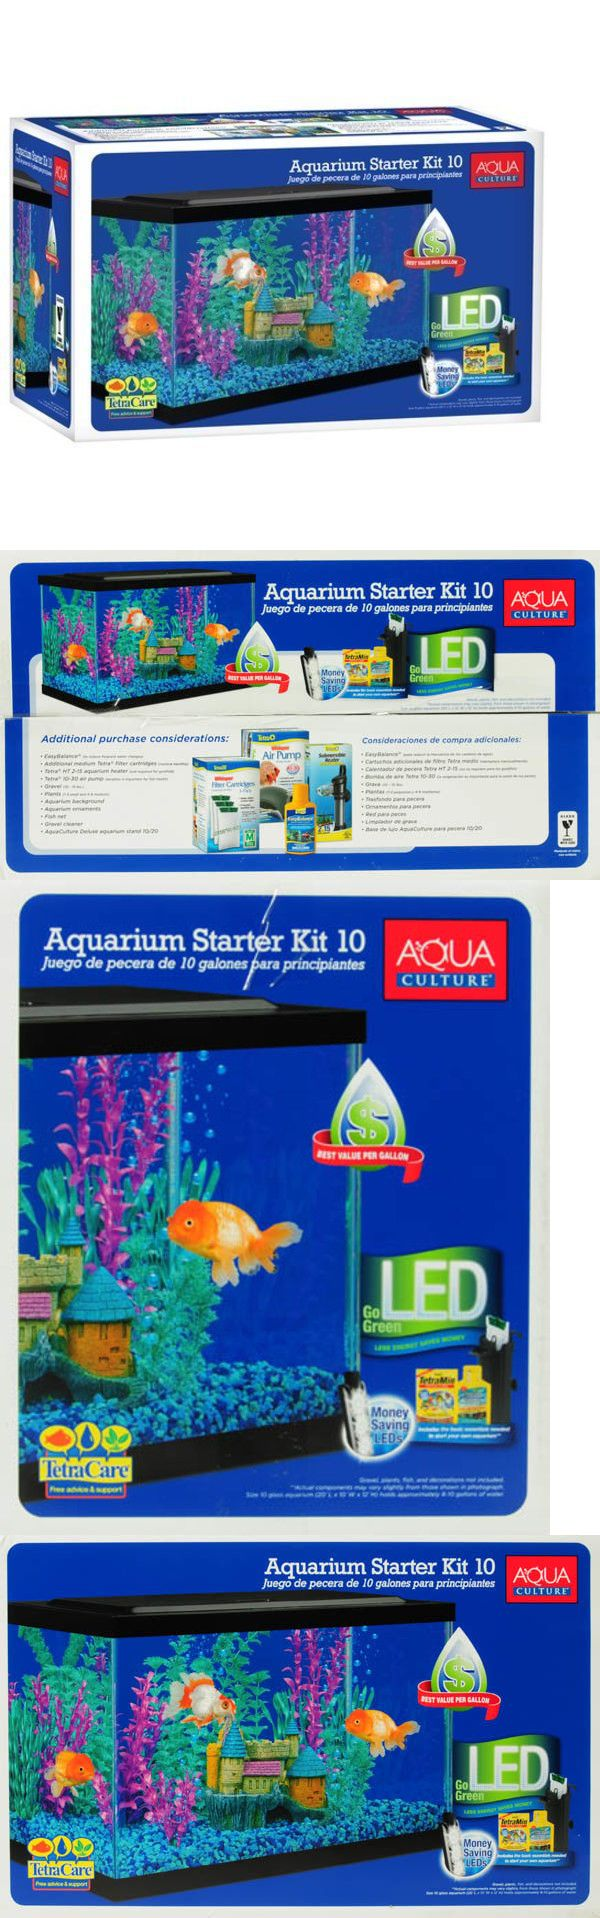 Aquarium fish tank starter kit - Aquariums And Tanks 20755 Aquarium Kit 10 Gallon Fish Tank Aquarium Fish Tank Led Light